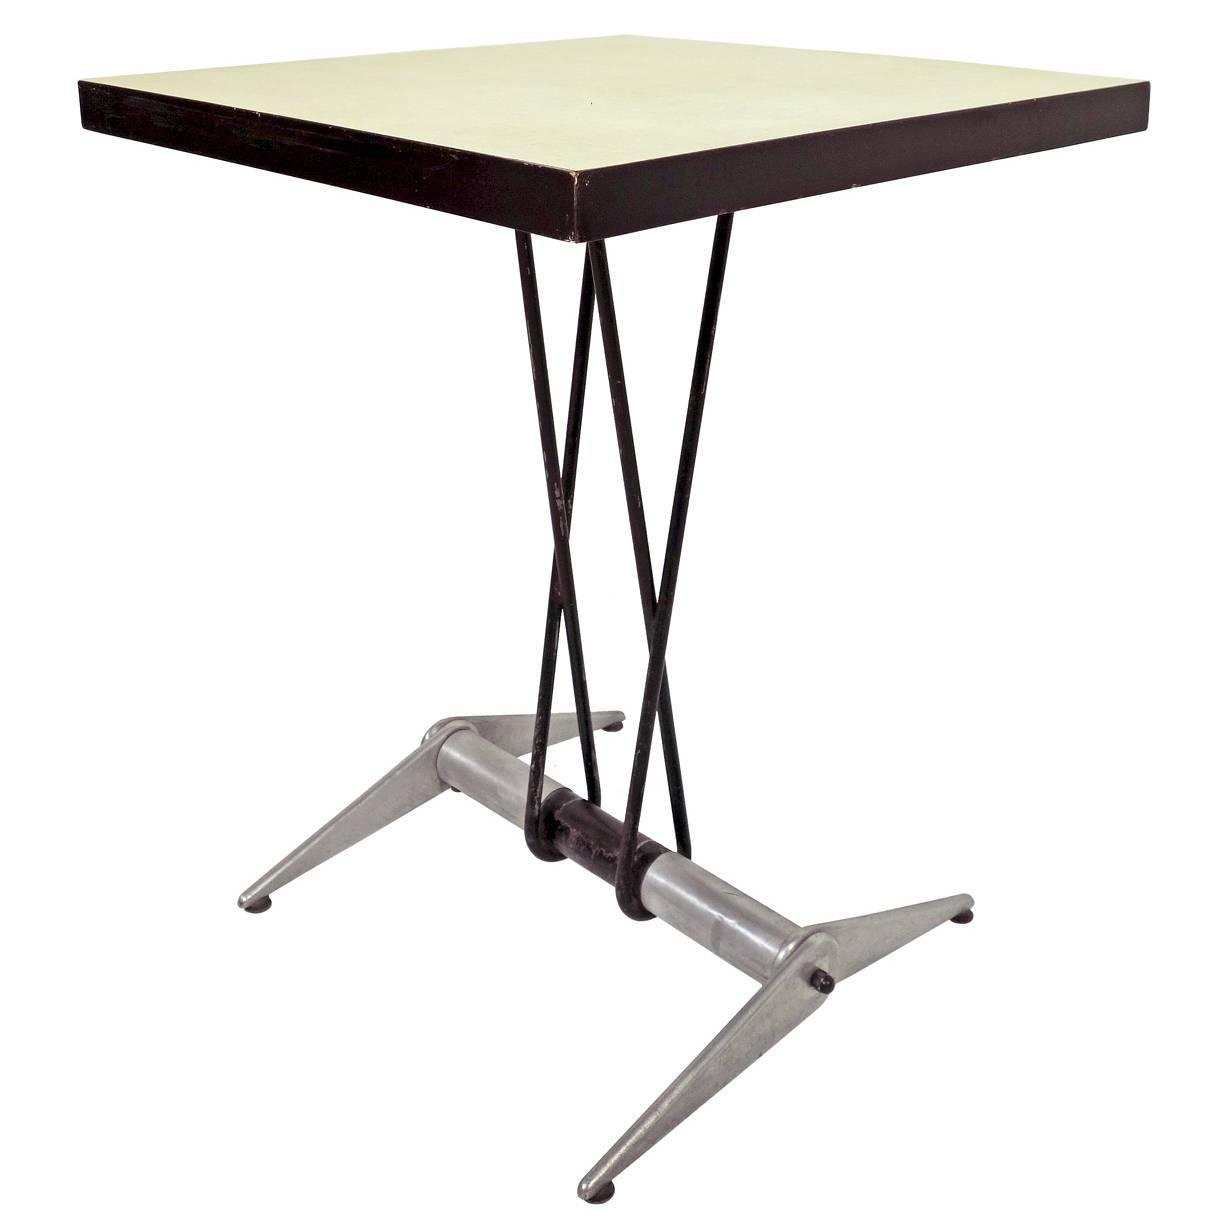 jean prouv table for the aero club for sale at 1stdibs. Black Bedroom Furniture Sets. Home Design Ideas